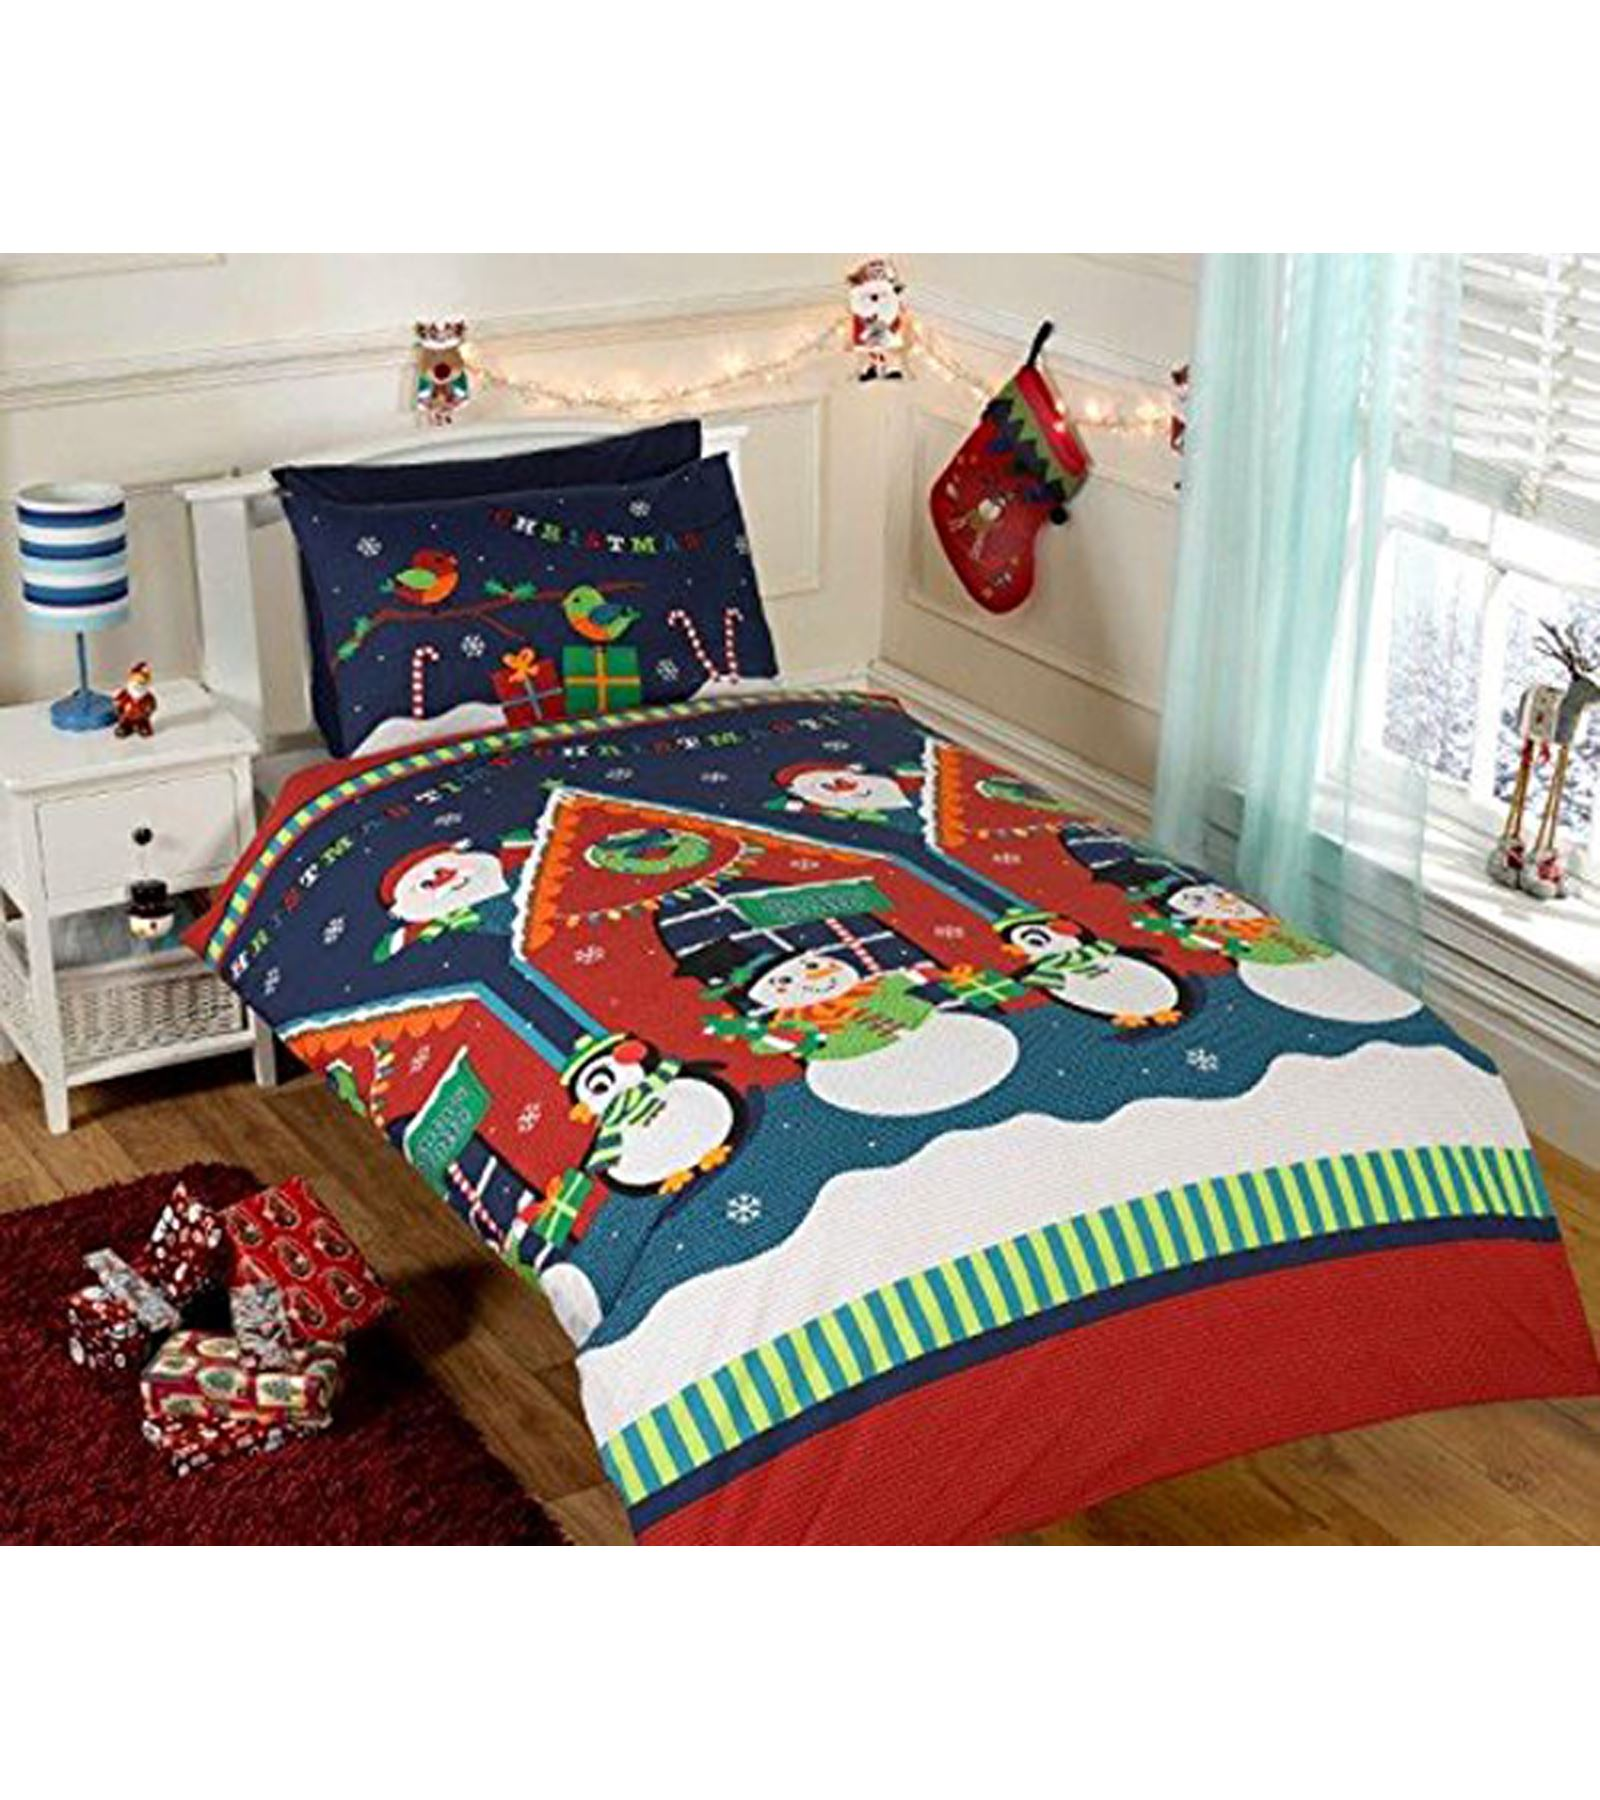 Christmas Duvet Covers Various Designs Available In Single